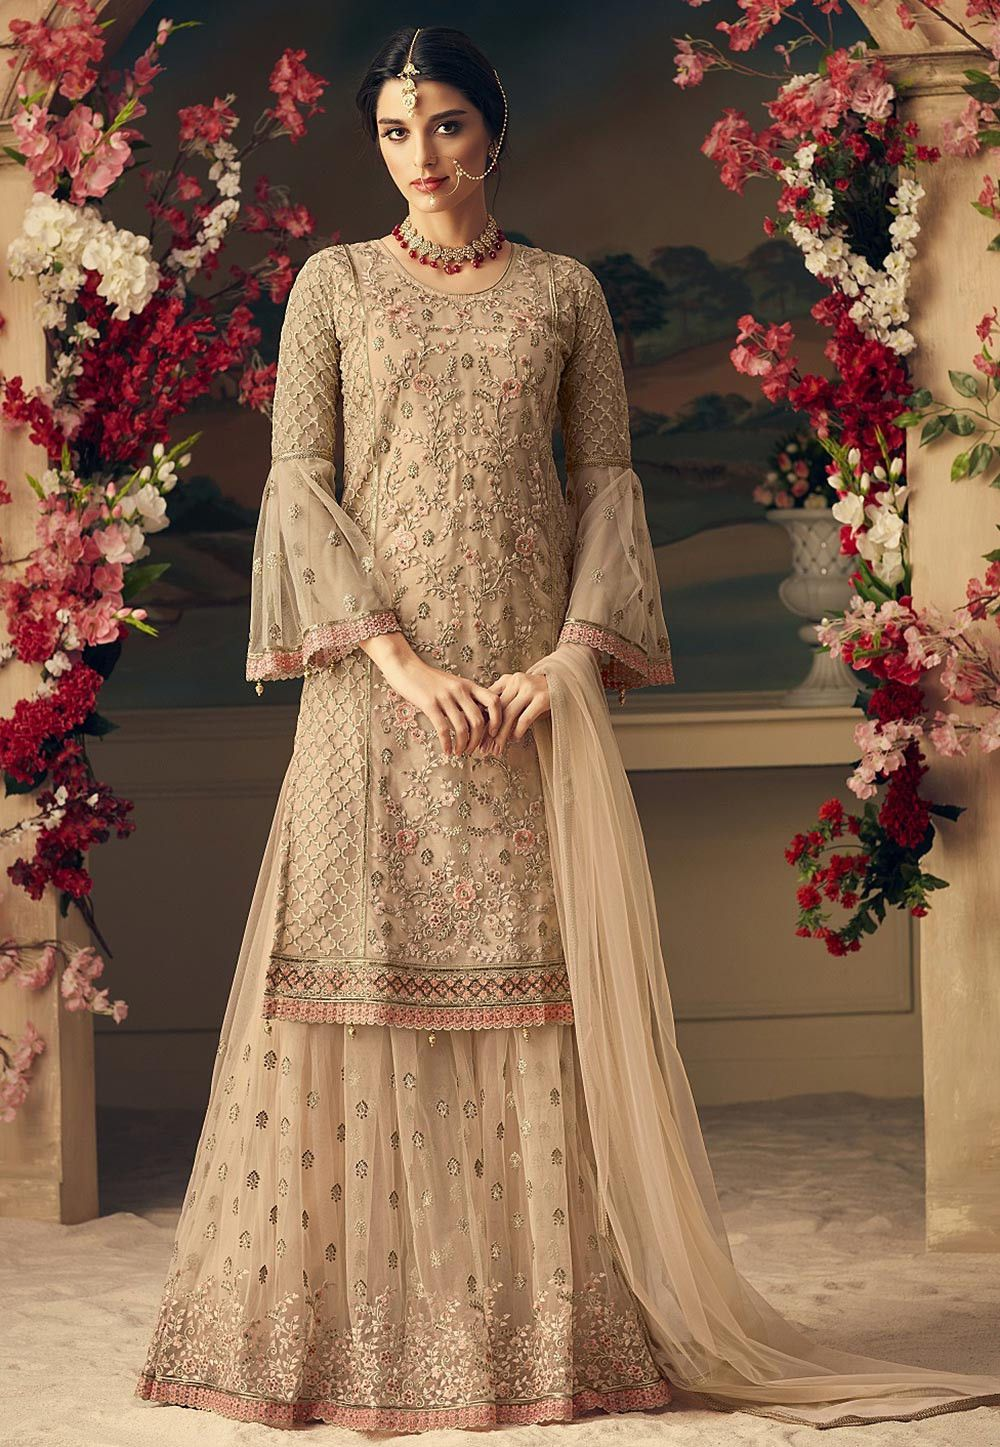 642d2af26435 Buy online Embroidered Net Pakistani Suit in Beige now, Item code: KCH2161,  Color: Beige, Occasion: Wedding, Festive, Bollywood Theme, Fabric: Net, ...